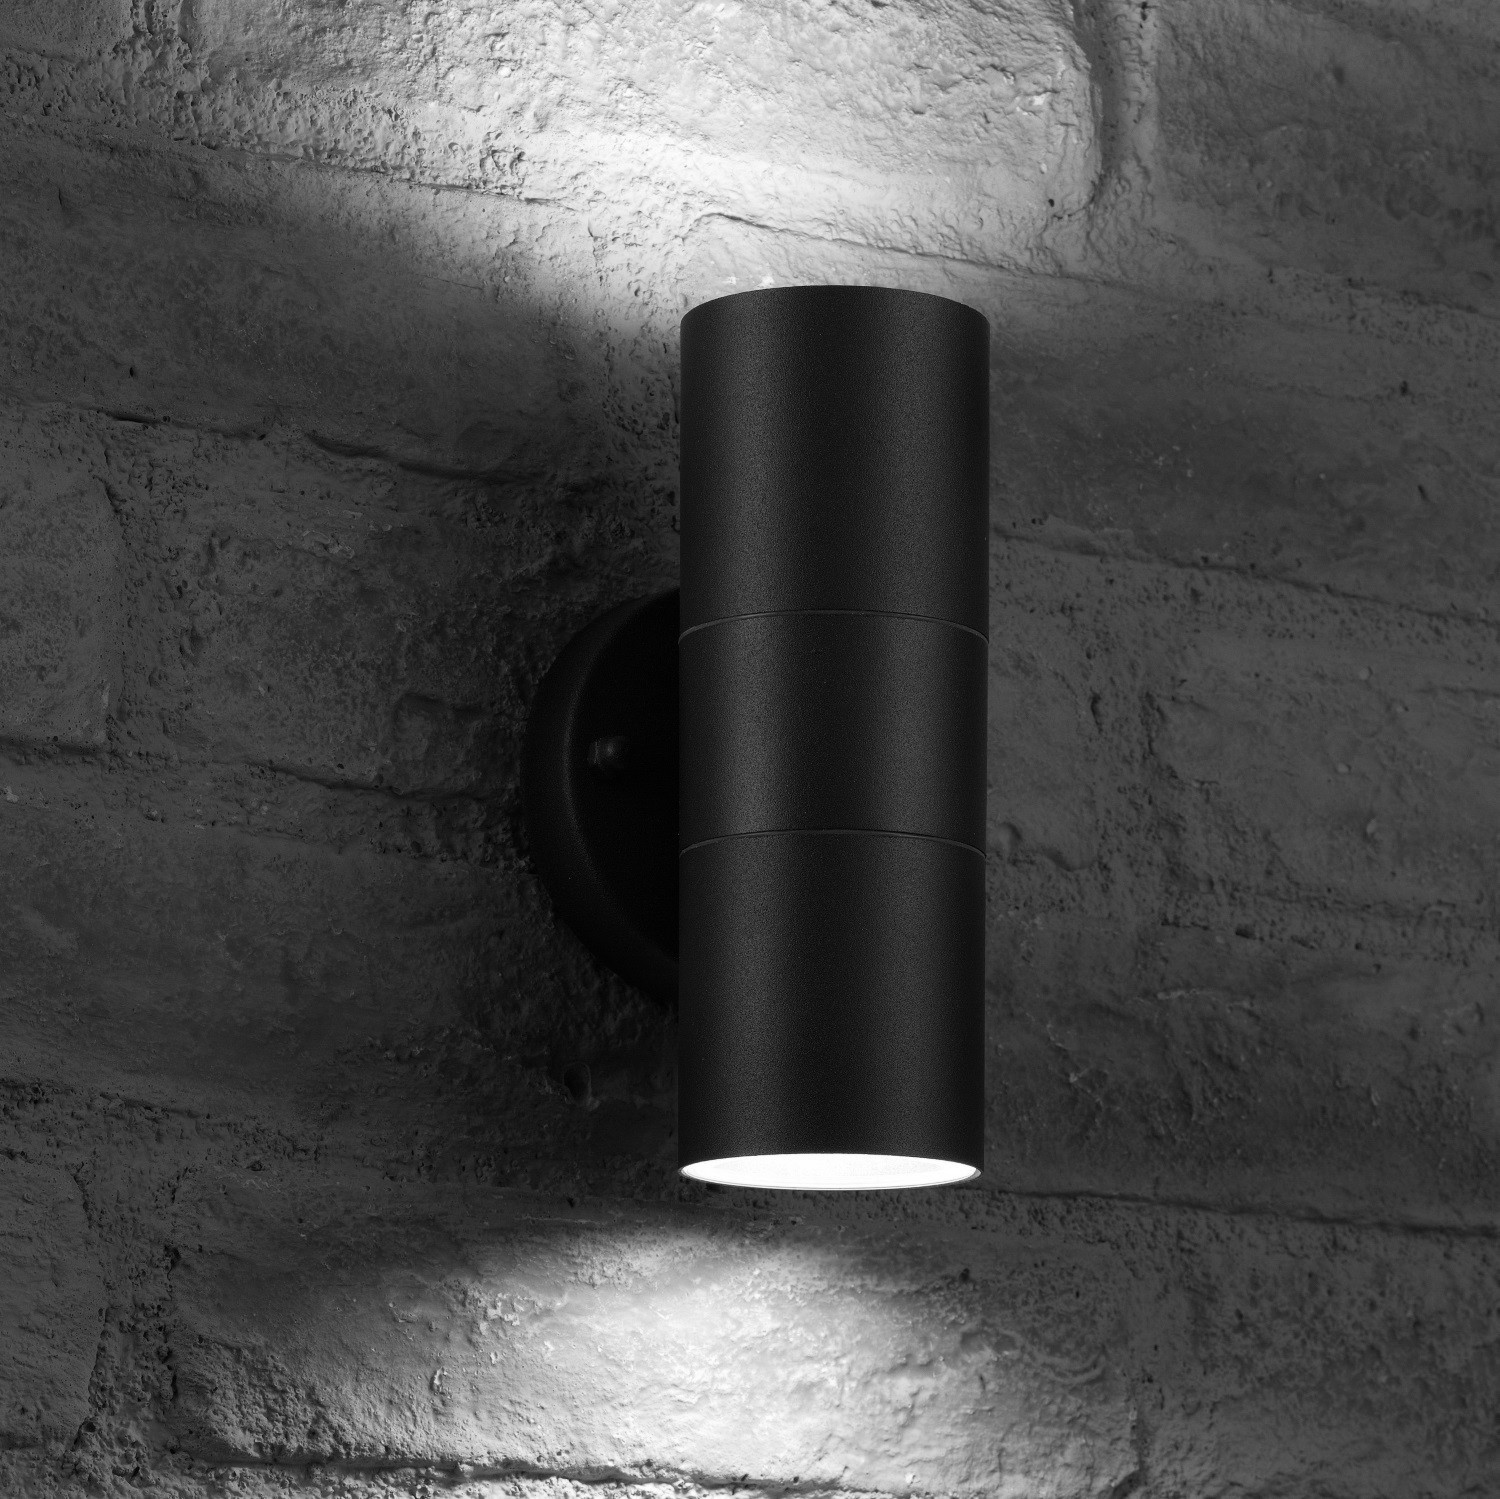 Illucio Black Up / Down IP44 50W MAX GU10 Outdoor Wall Light Fitting